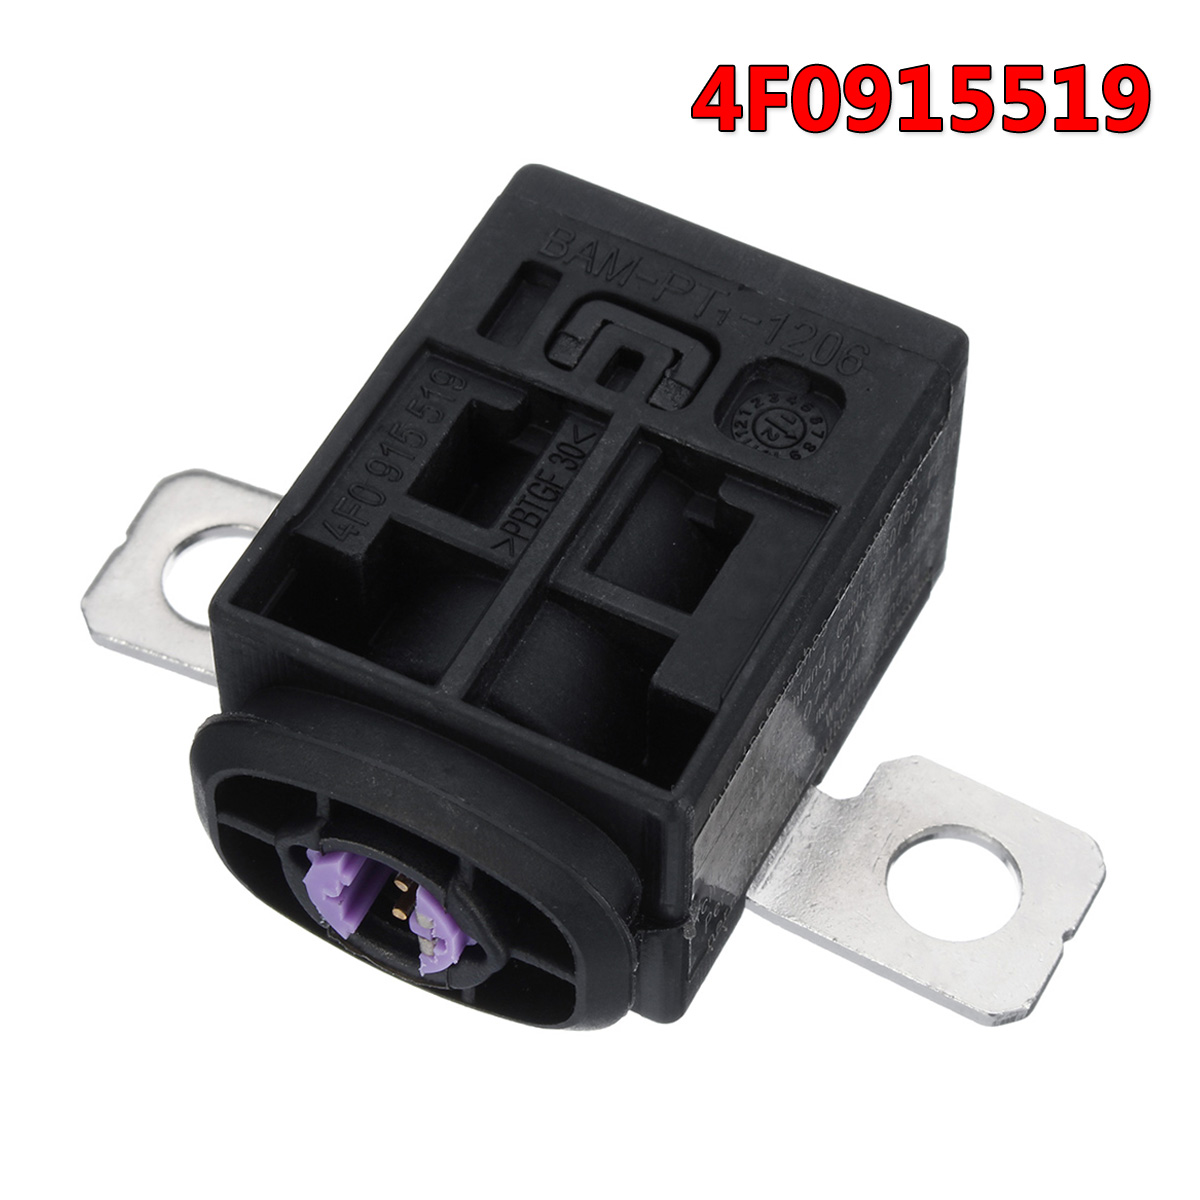 4F0915519 Battery Fuse Box Cut Off Overload Protection Trip For Audi Q5 A5  A7 A6 /VW /Skoda-in Fuses from Automobiles & Motorcycles on Aliexpress.com  ...